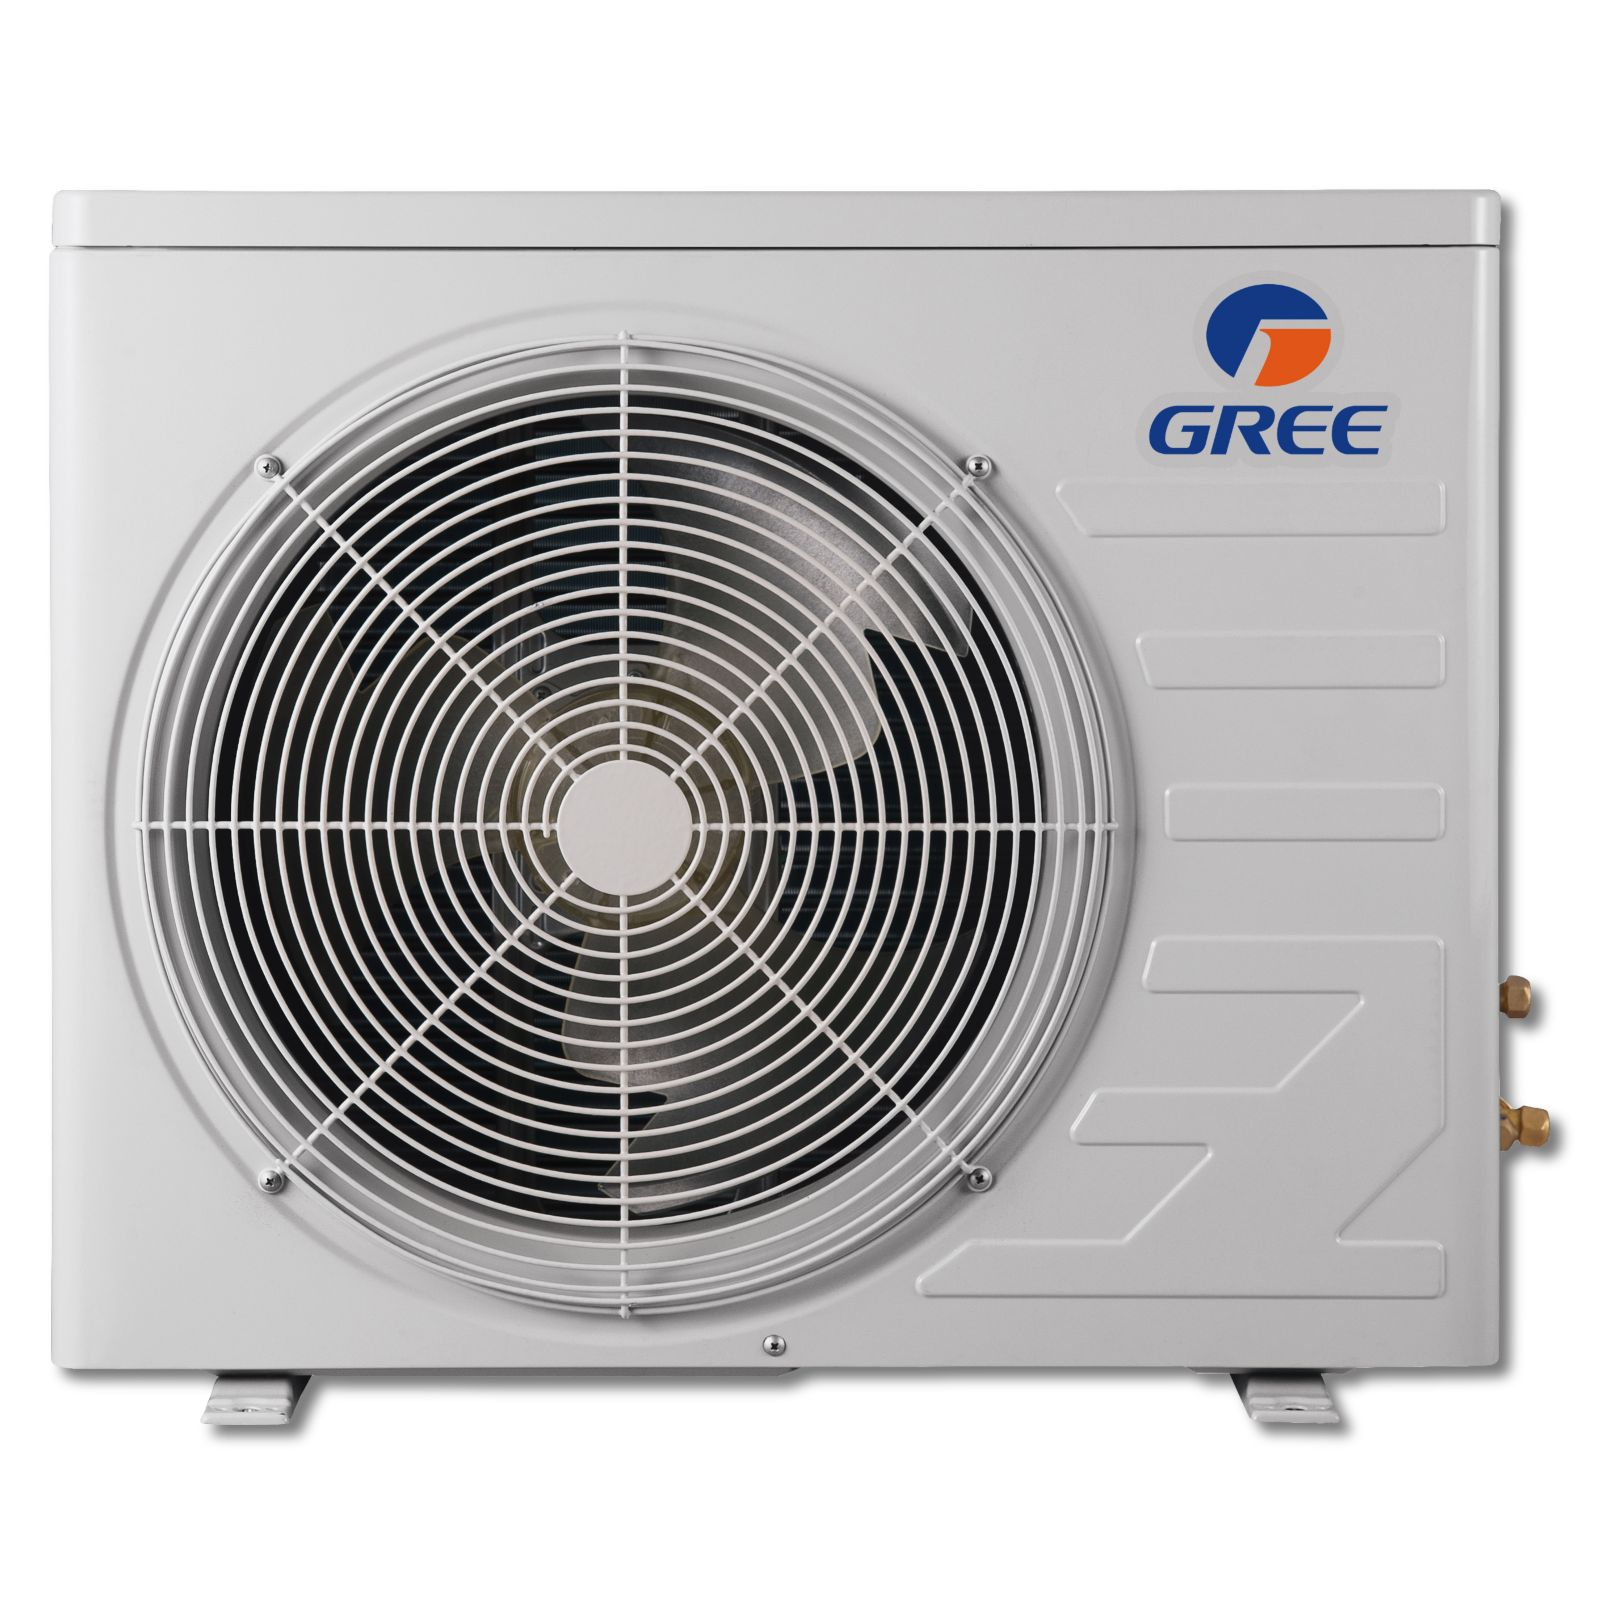 GREE RIO09HP230V1BO - RIO Ductless Outdoor Unit, 3/4 Ton, 208-230/60 High Efficiency DC Inverter, 16 SEER, 10.6 EER, 8.5 HSPF